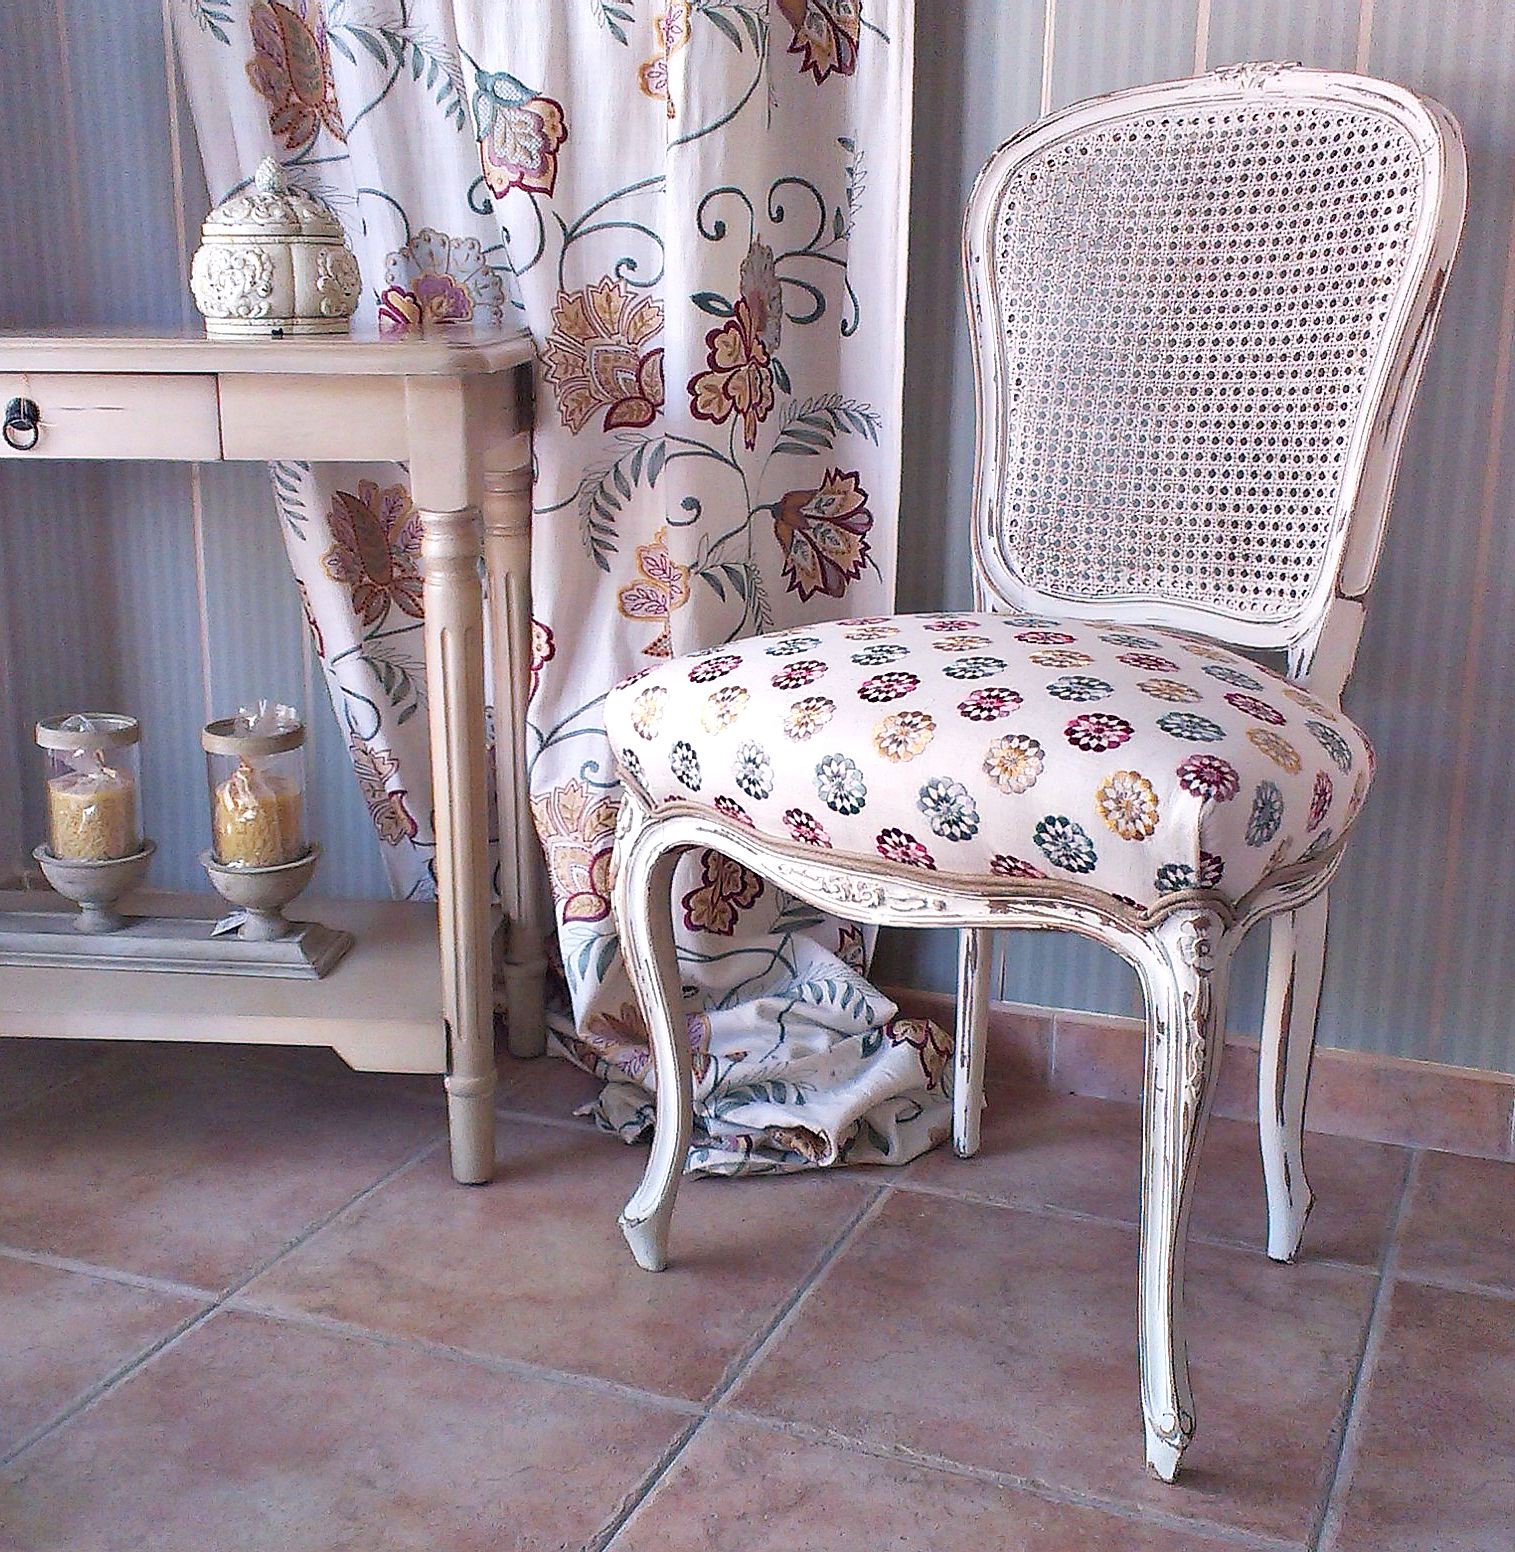 Sillas vintage estilo luis xv vintage chairs louis xv style bohemian and chic - Sillas de decoracion ...